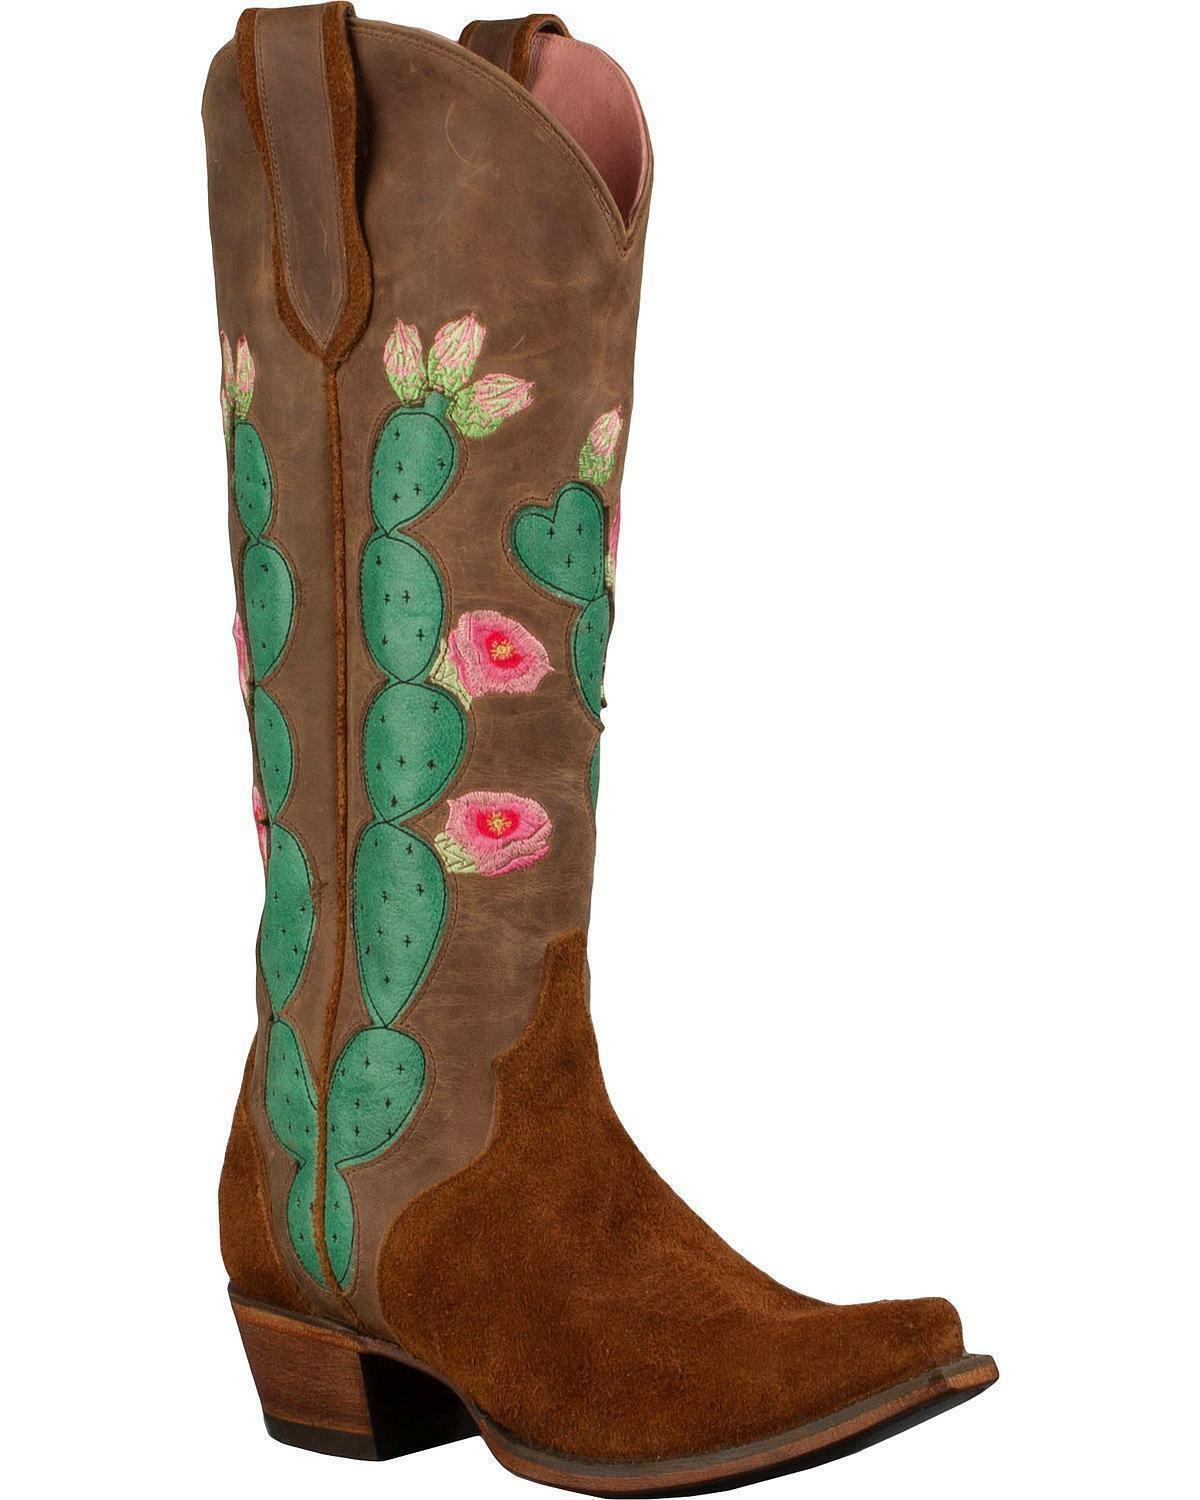 Junk Gypsy by Lane Women's Hard to Handle Western Boot - Snip Toe - JG0012A